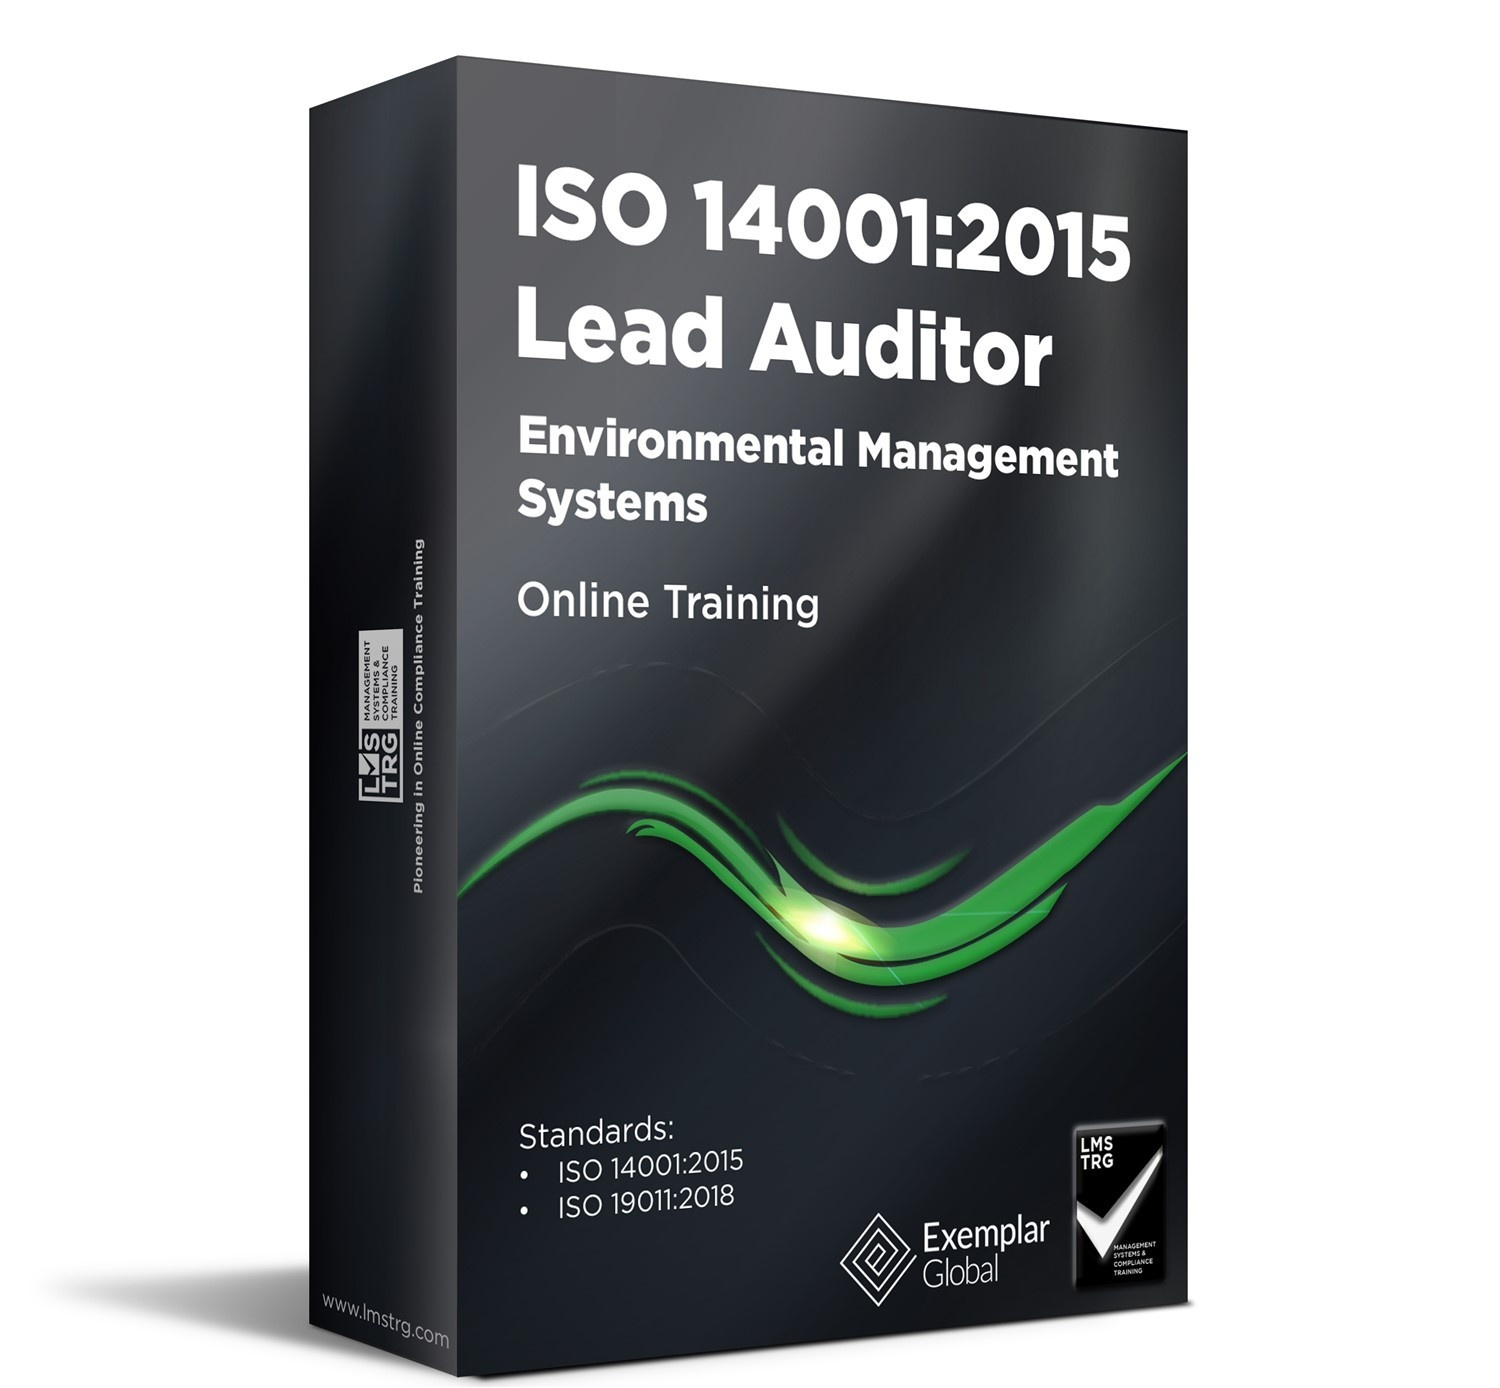 ISO 14001 Environmental Management Systems (EMS) Lead Auditor ISO Online Course